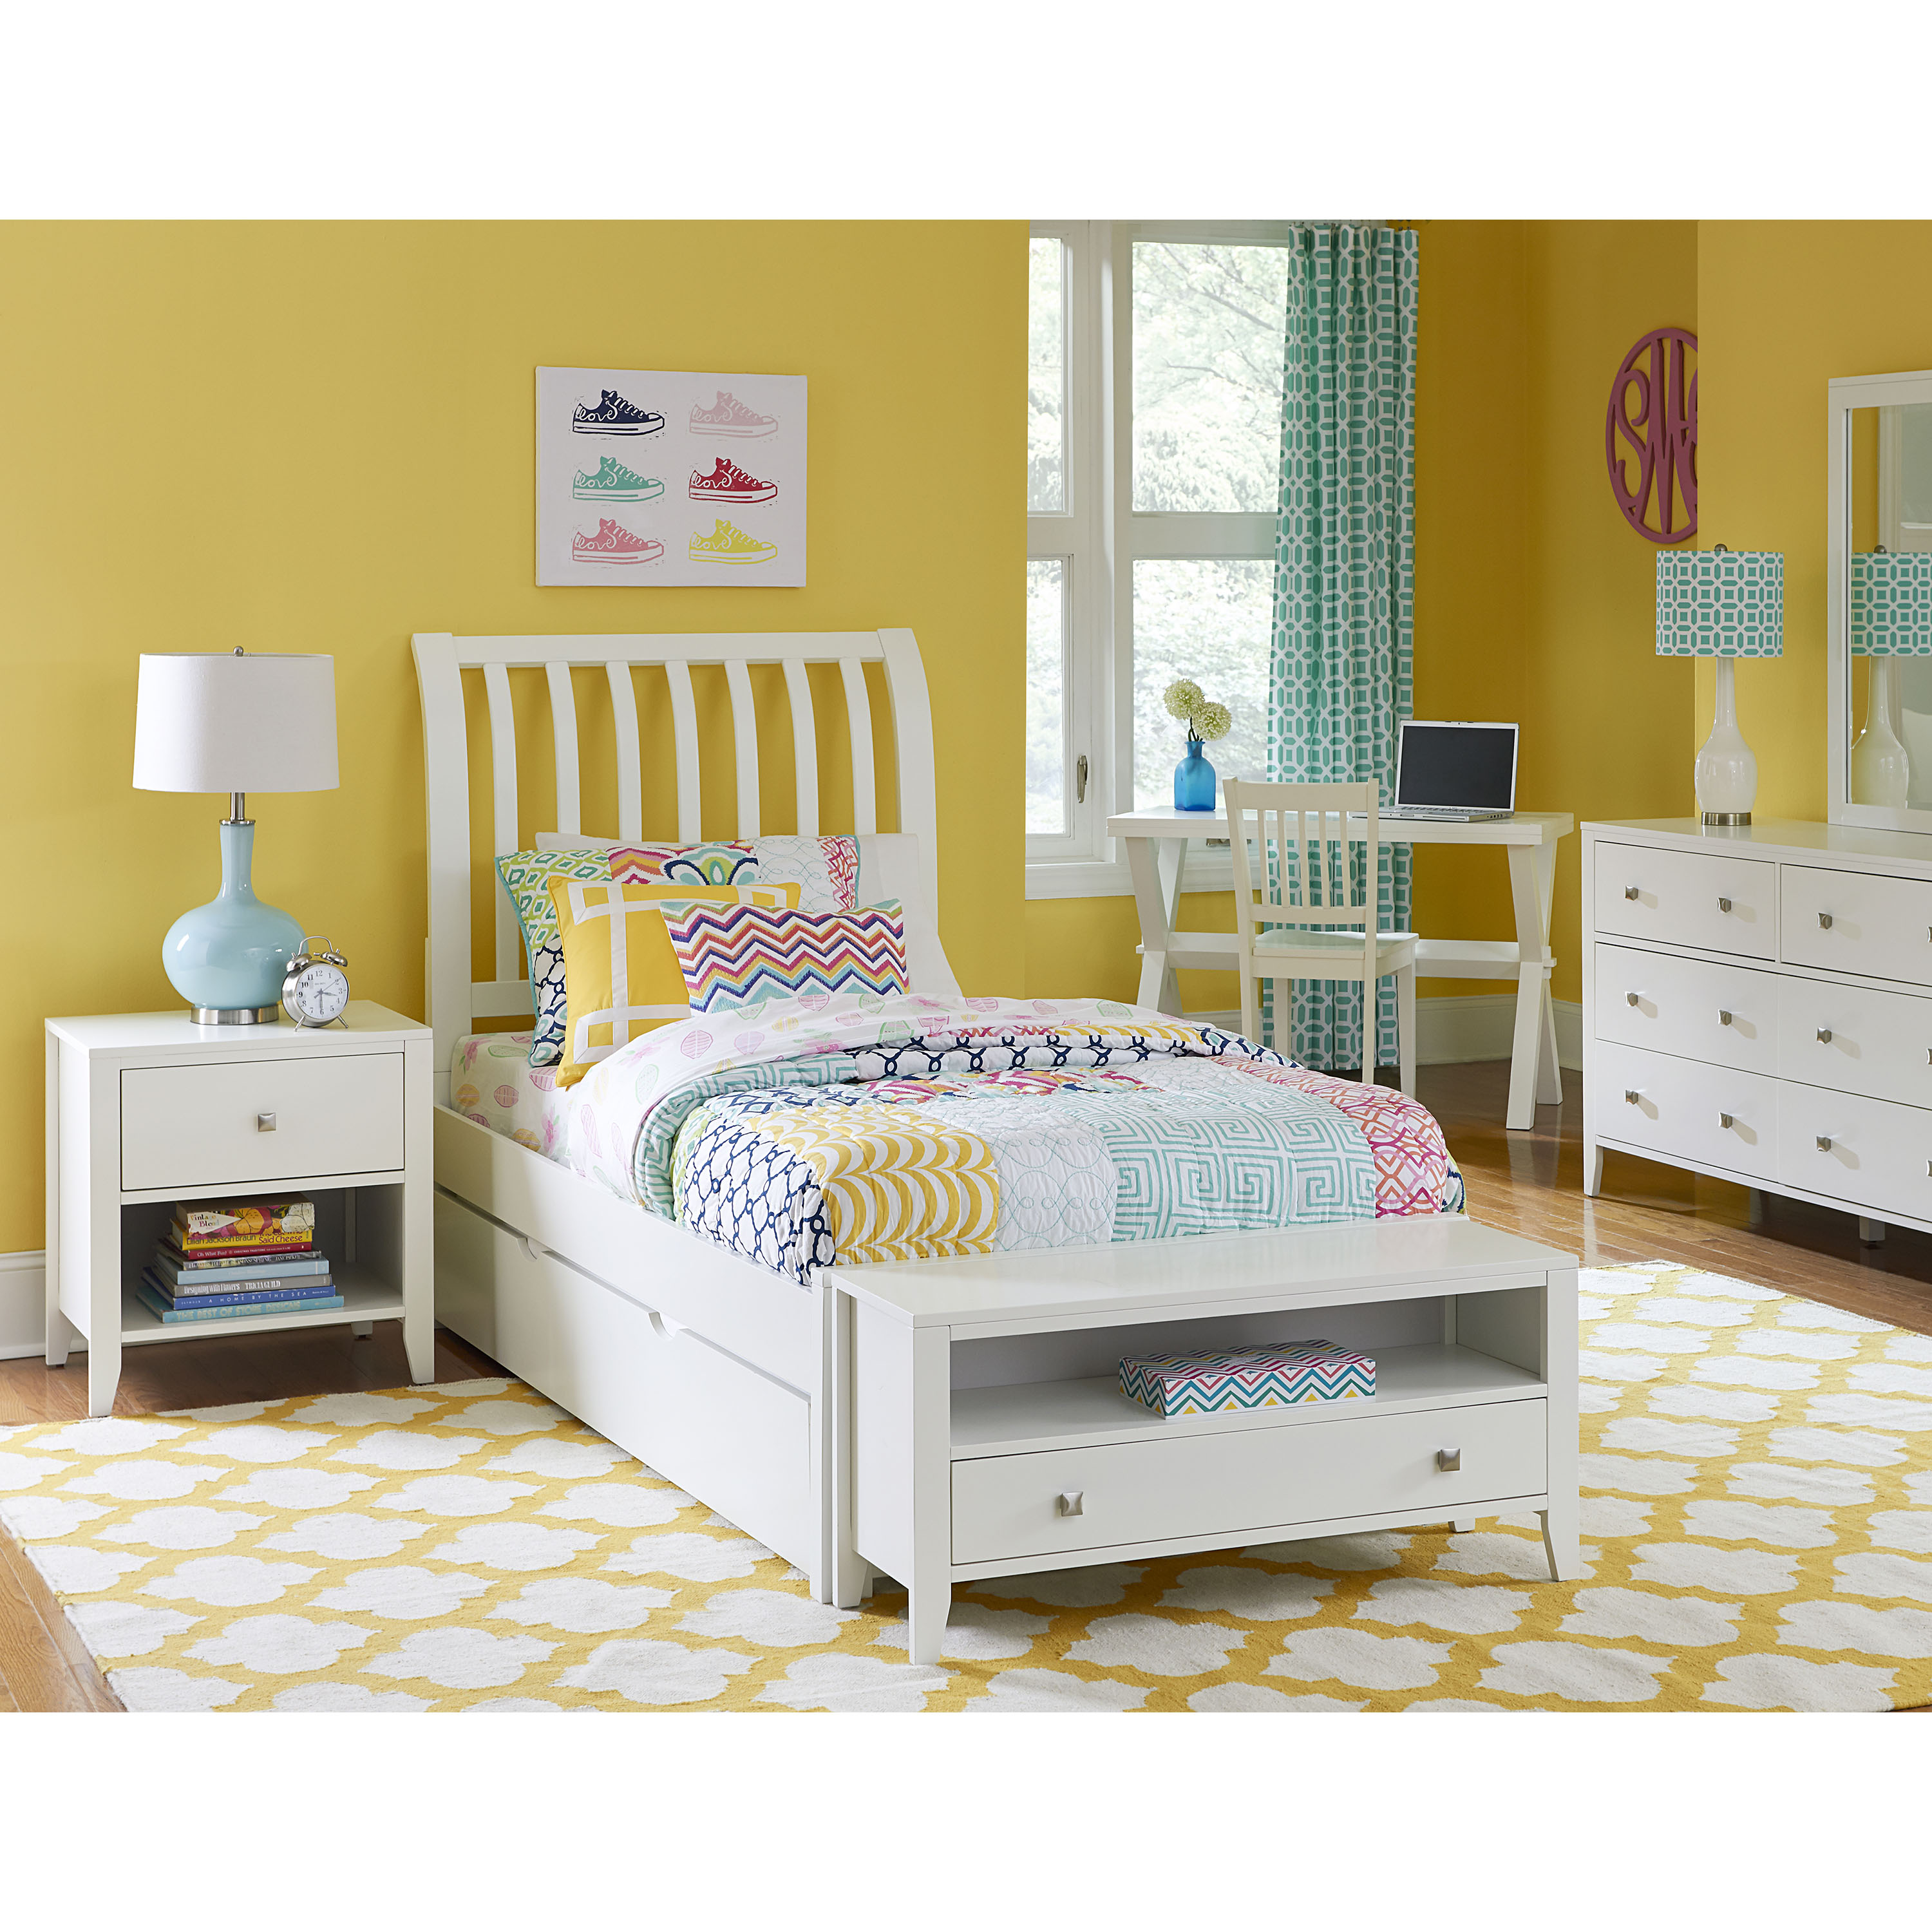 Hillsdale Furniture Pulse Rake Sleigh Bed with Trundle, Multiple Sizes and Colors